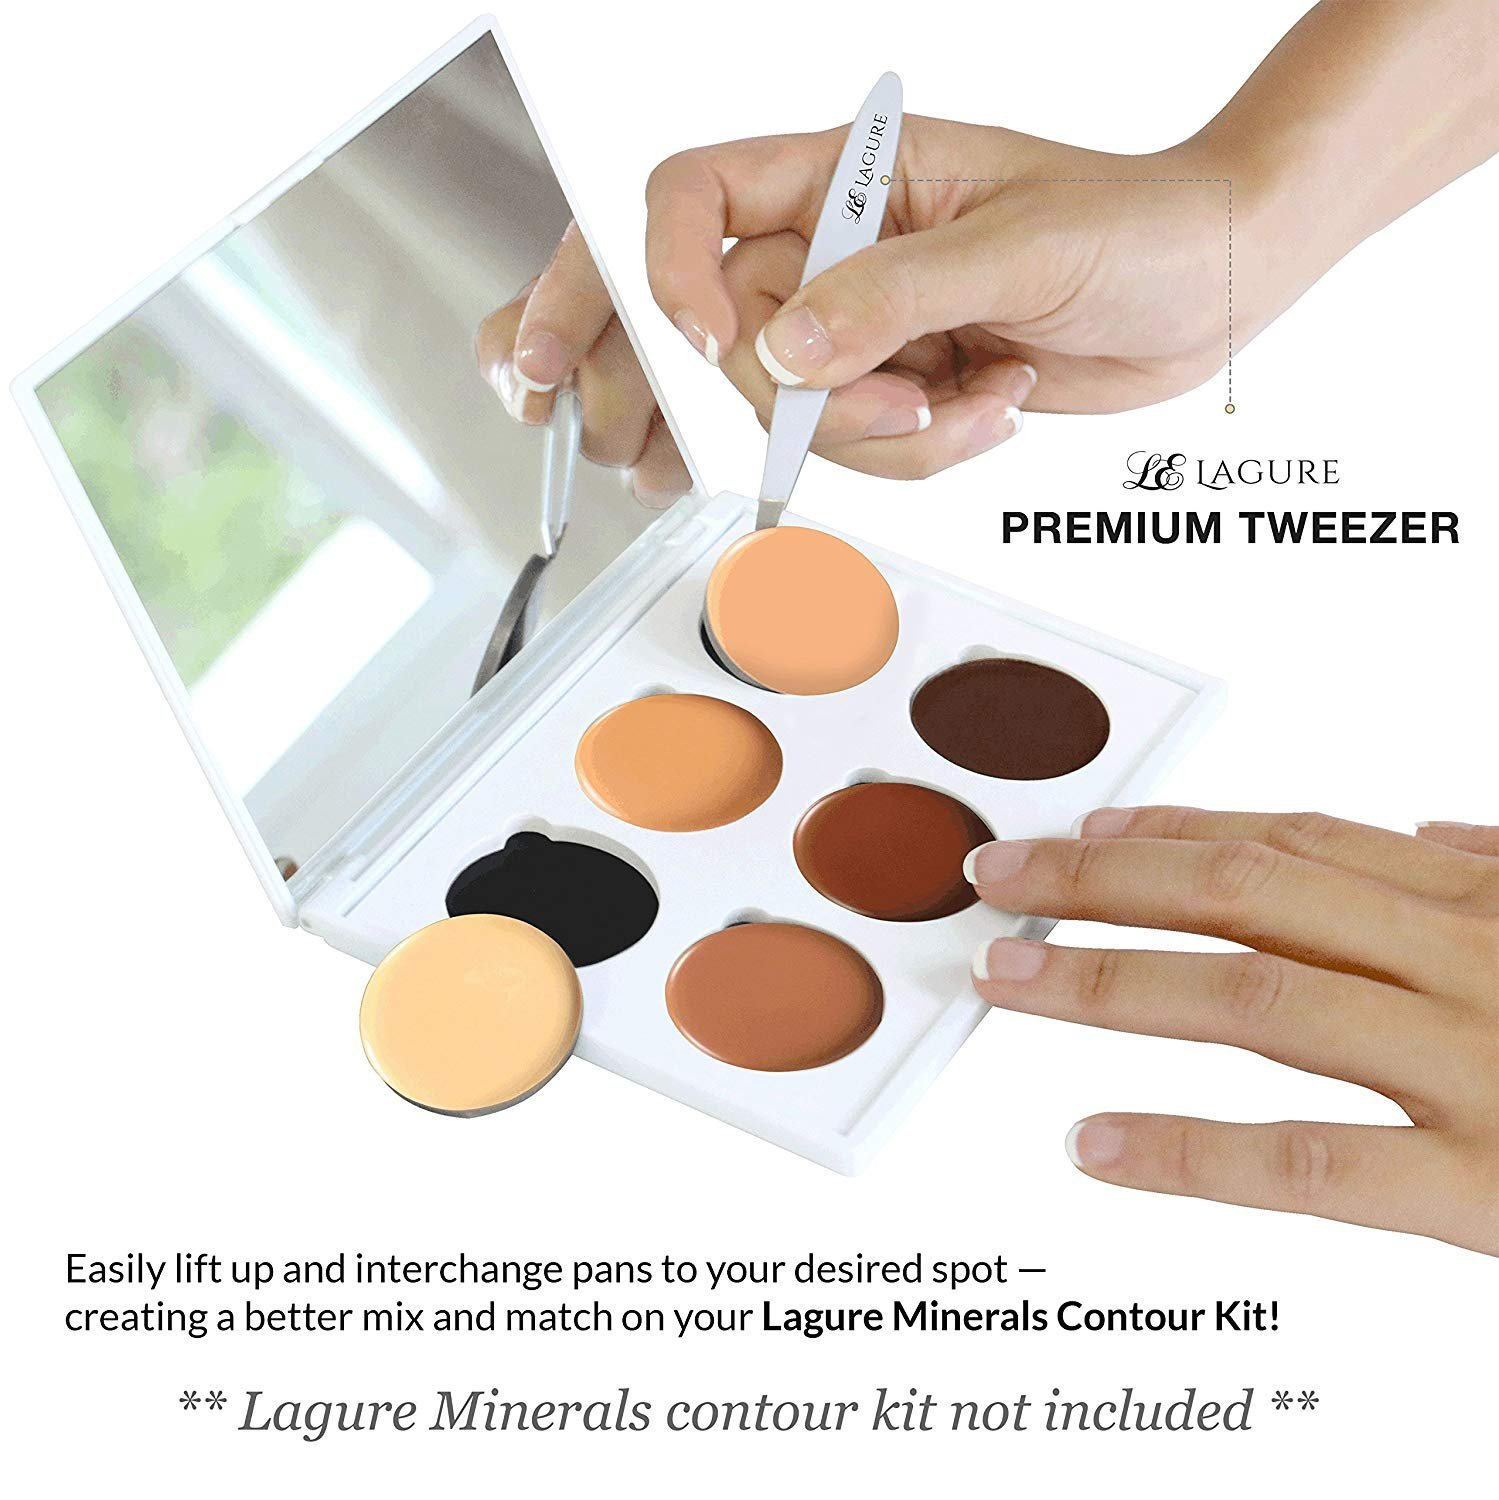 Lagure Slant Tweezers - Best Stainless Steel Eyebrow Tweezers with Ultra Strong Grip and Ultimate Precision